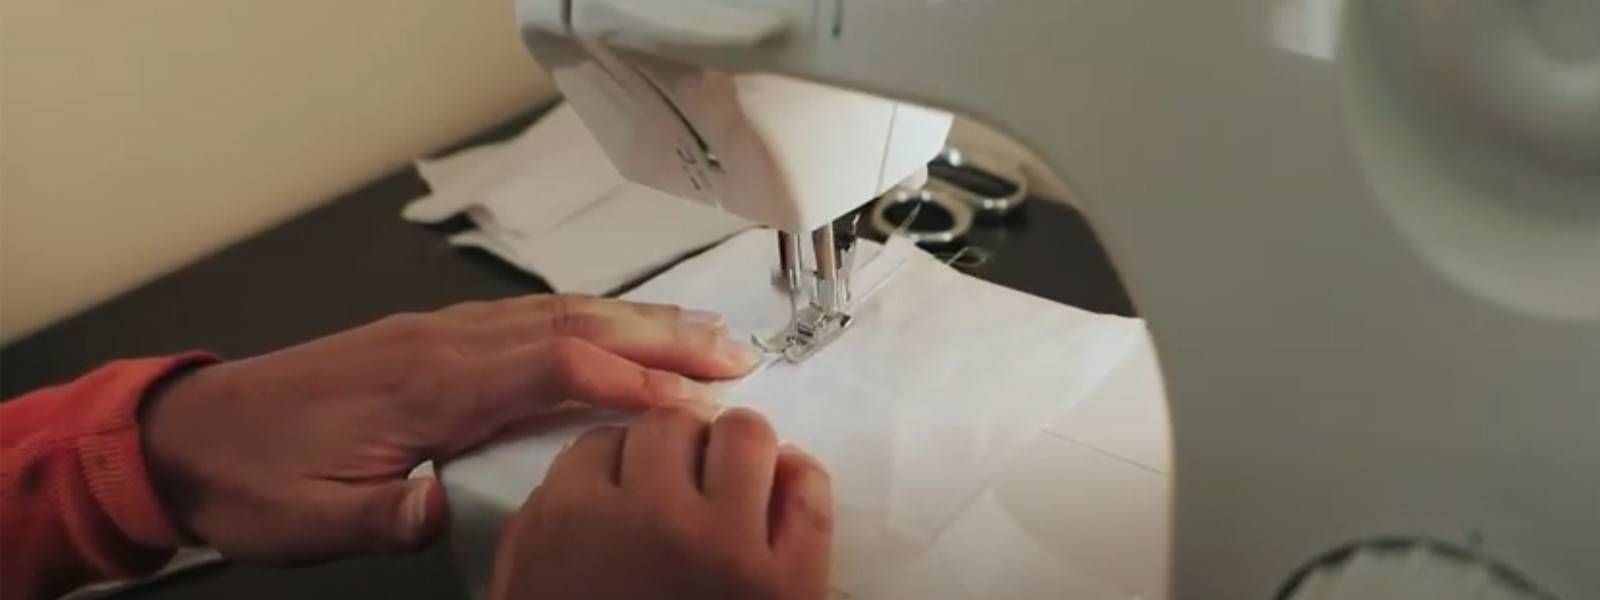 Tutorials - Introduction to sewing